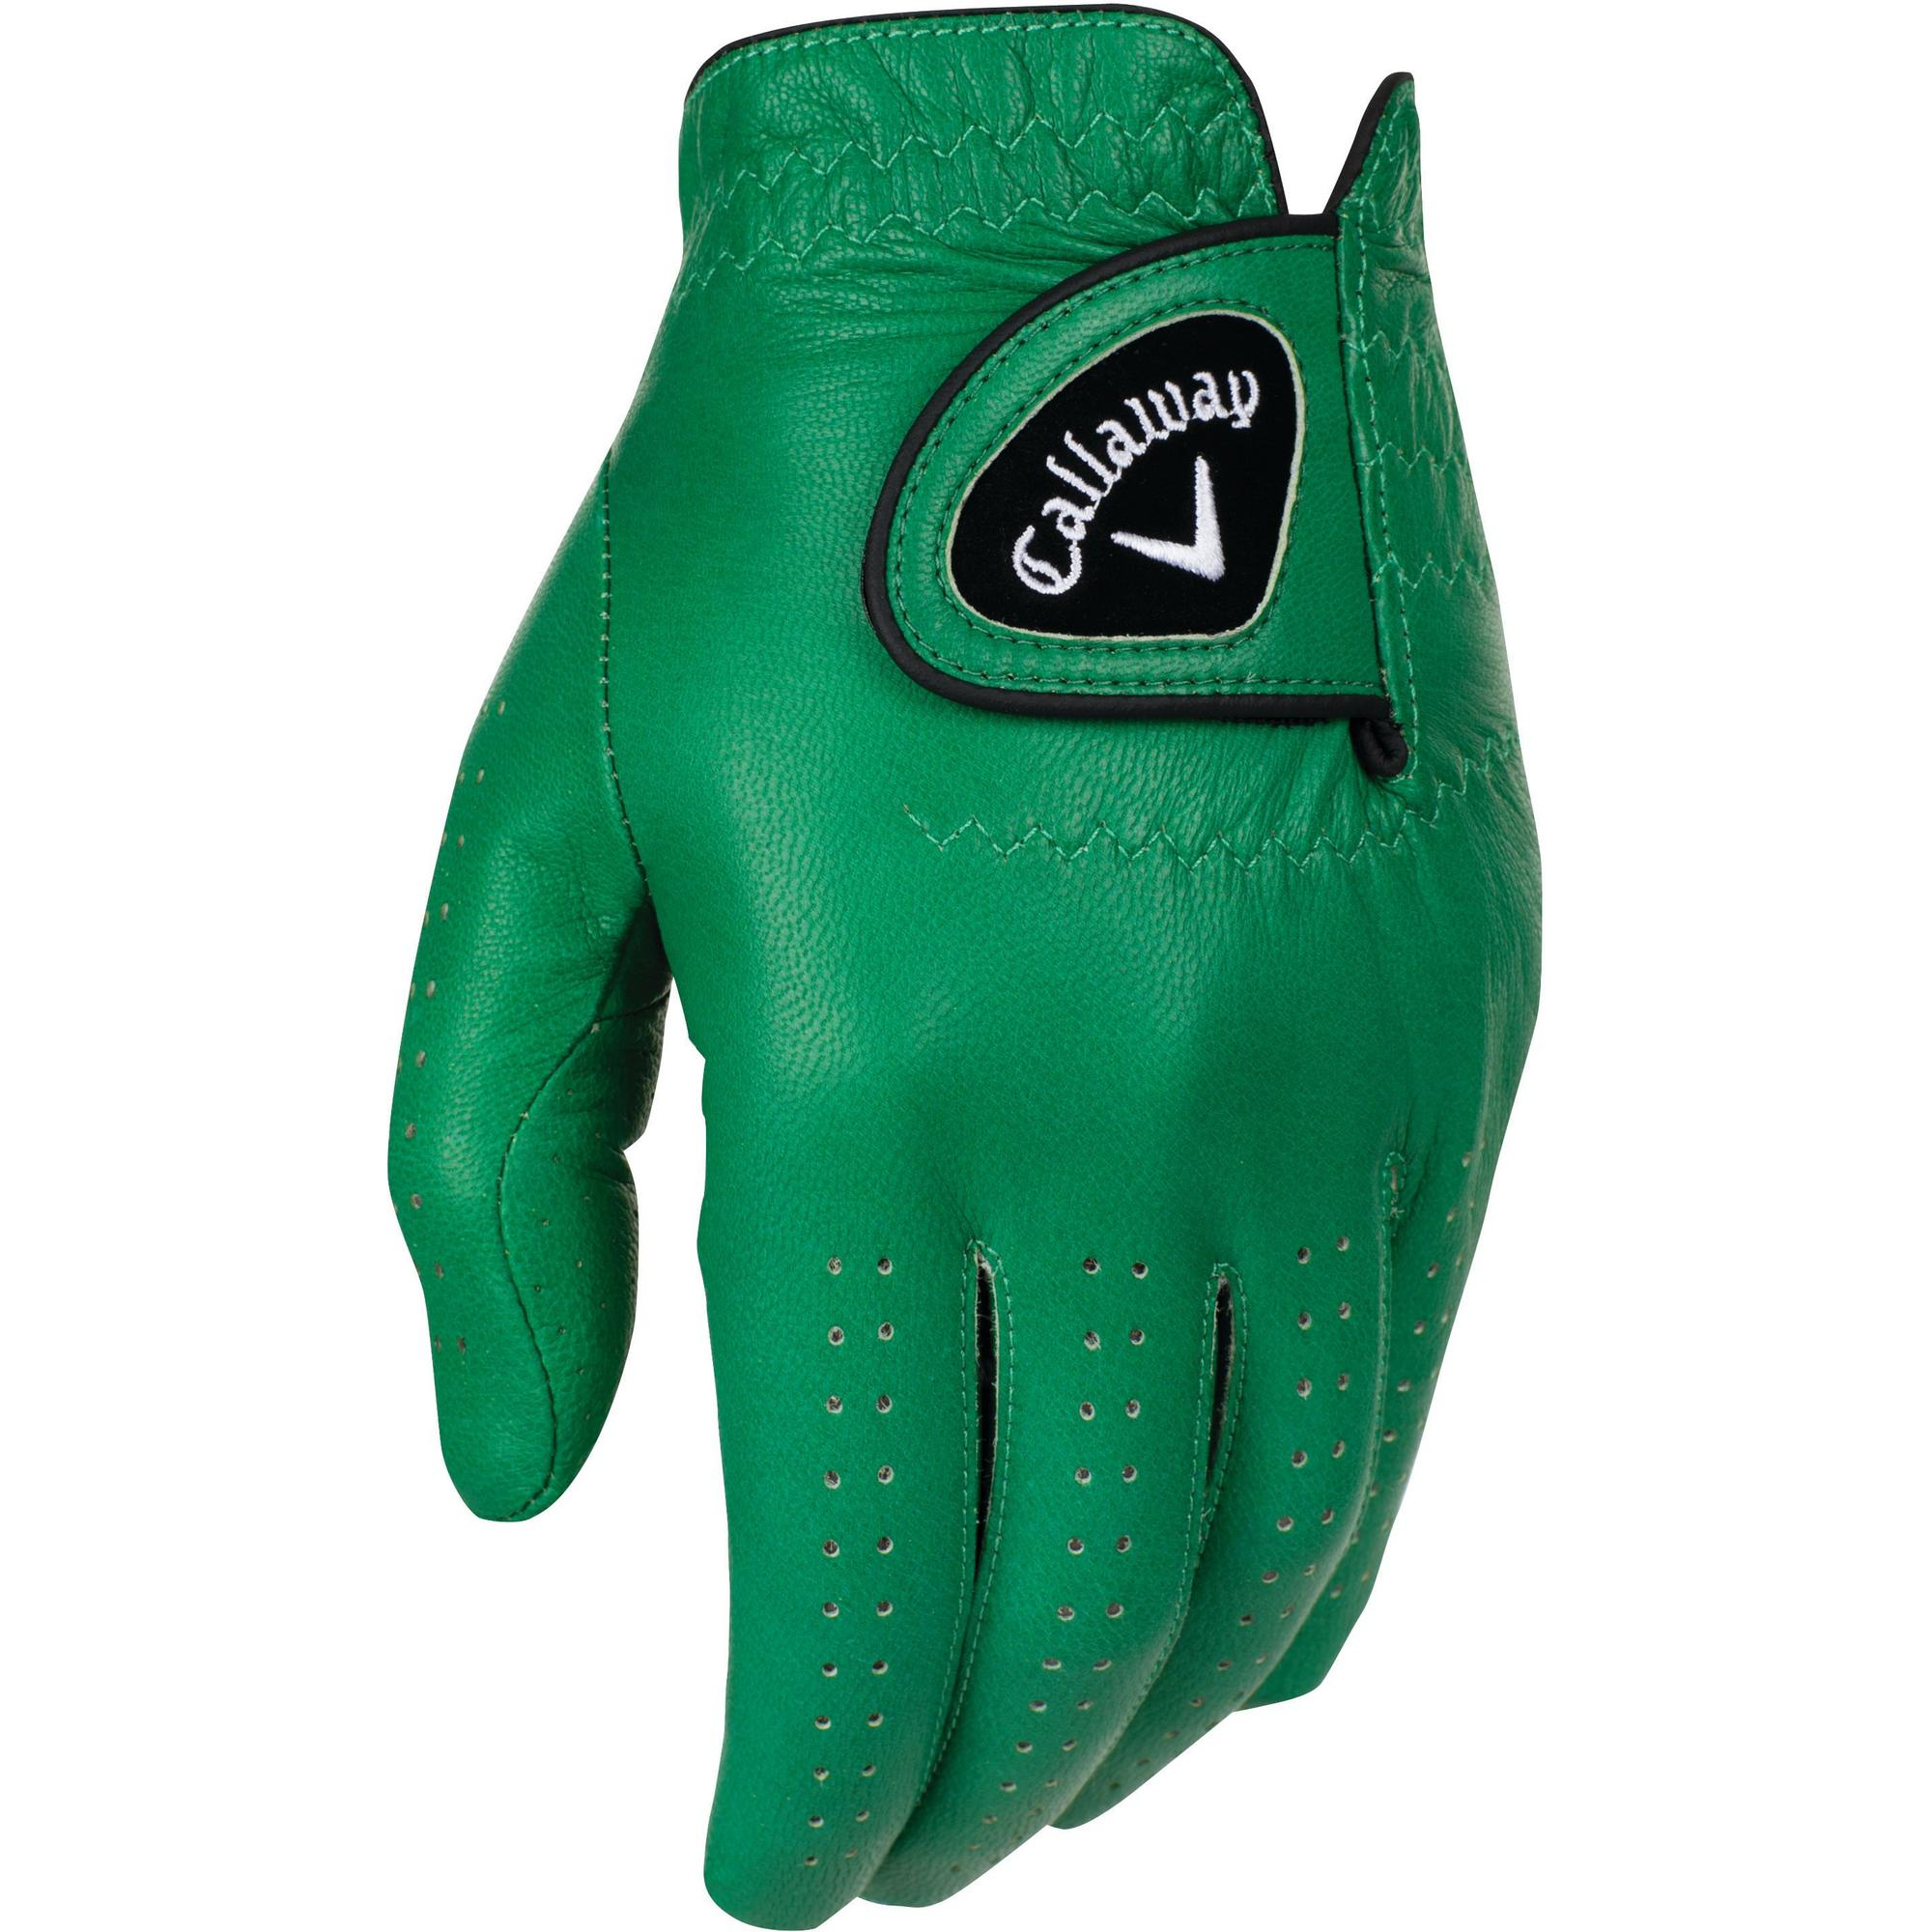 Opticolour Golf Glove – Green